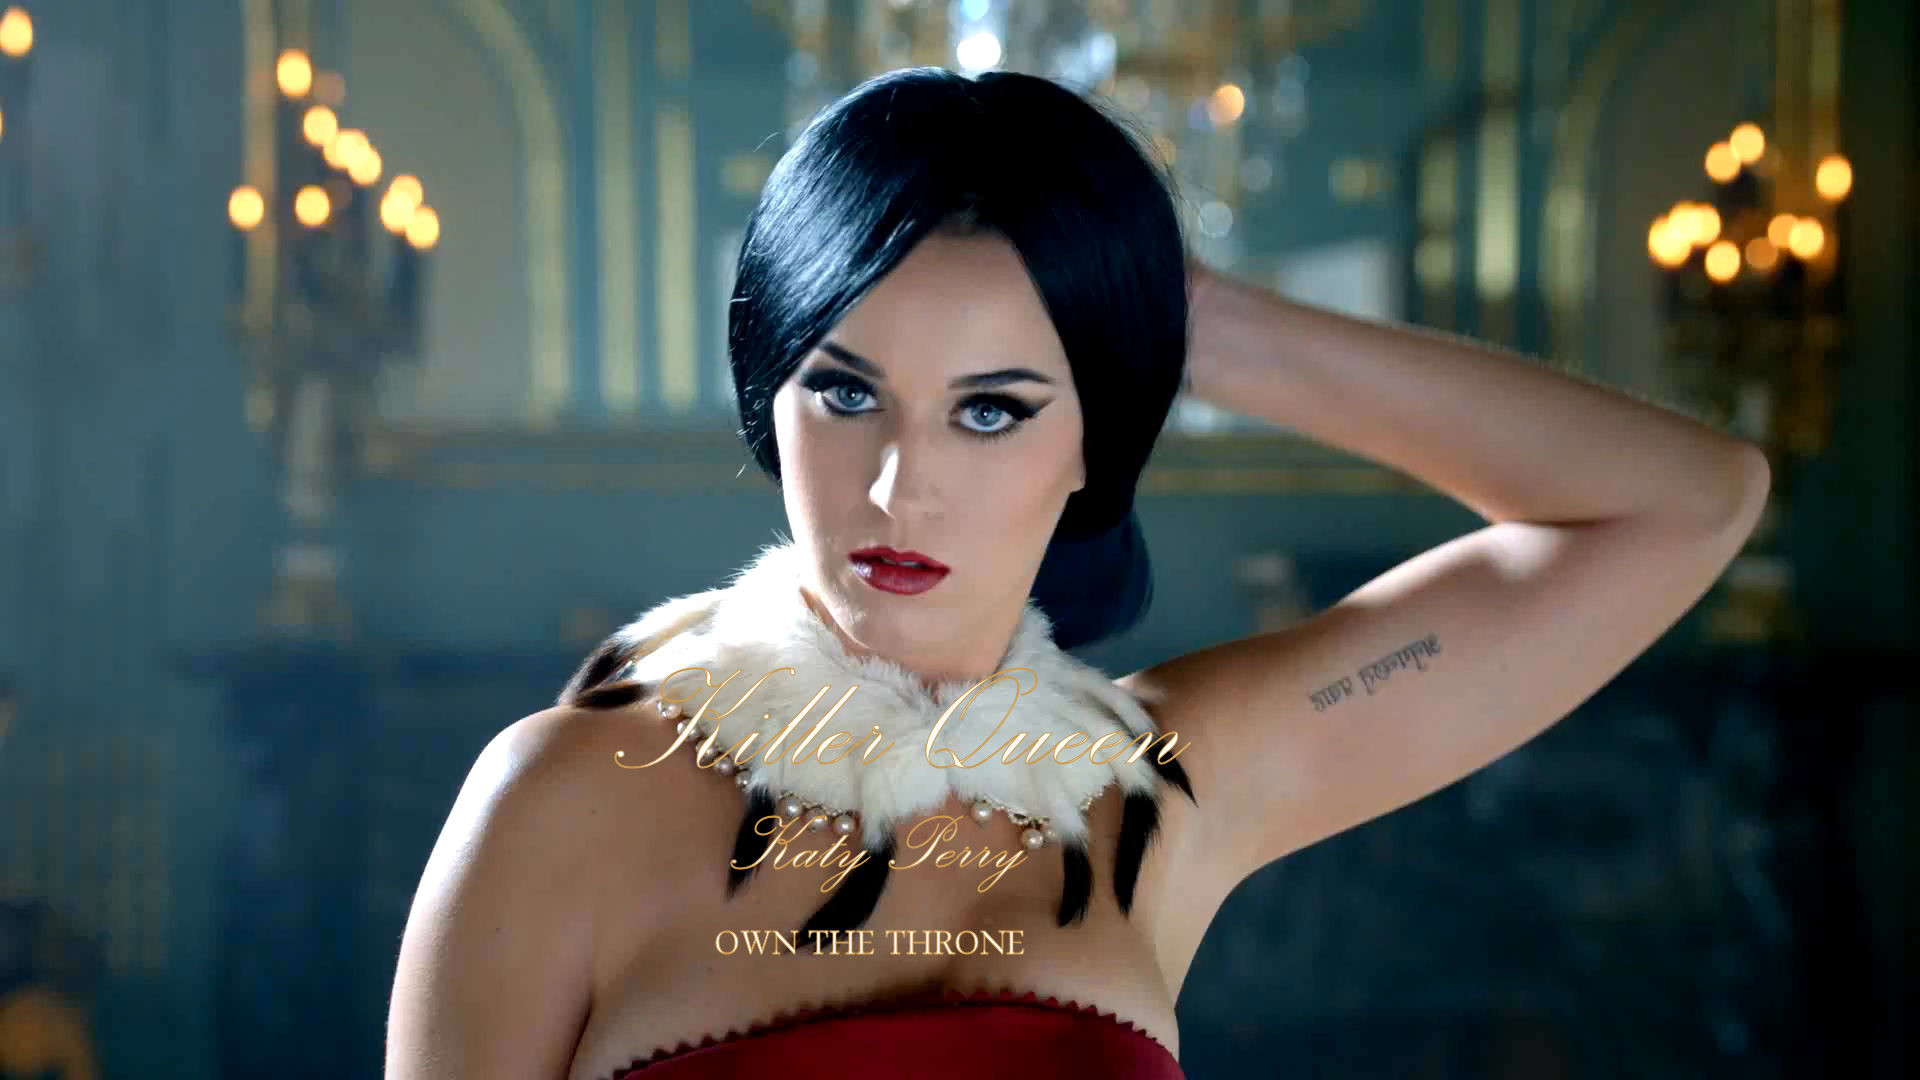 Katy Perry Hd Wallpaper 75 Images